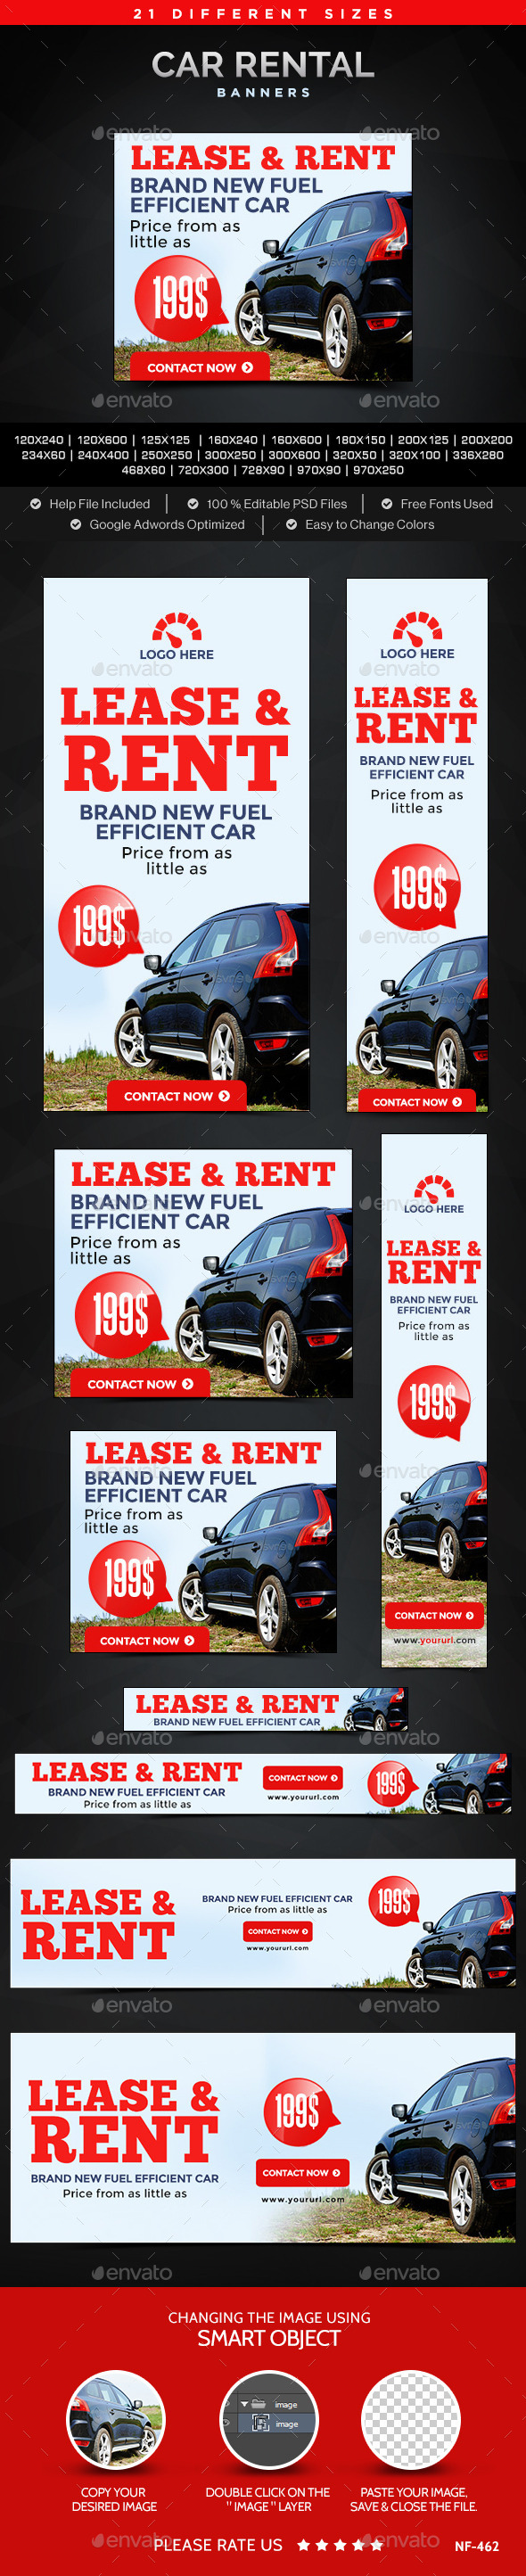 GraphicRiver Car Rental Banners 11932721